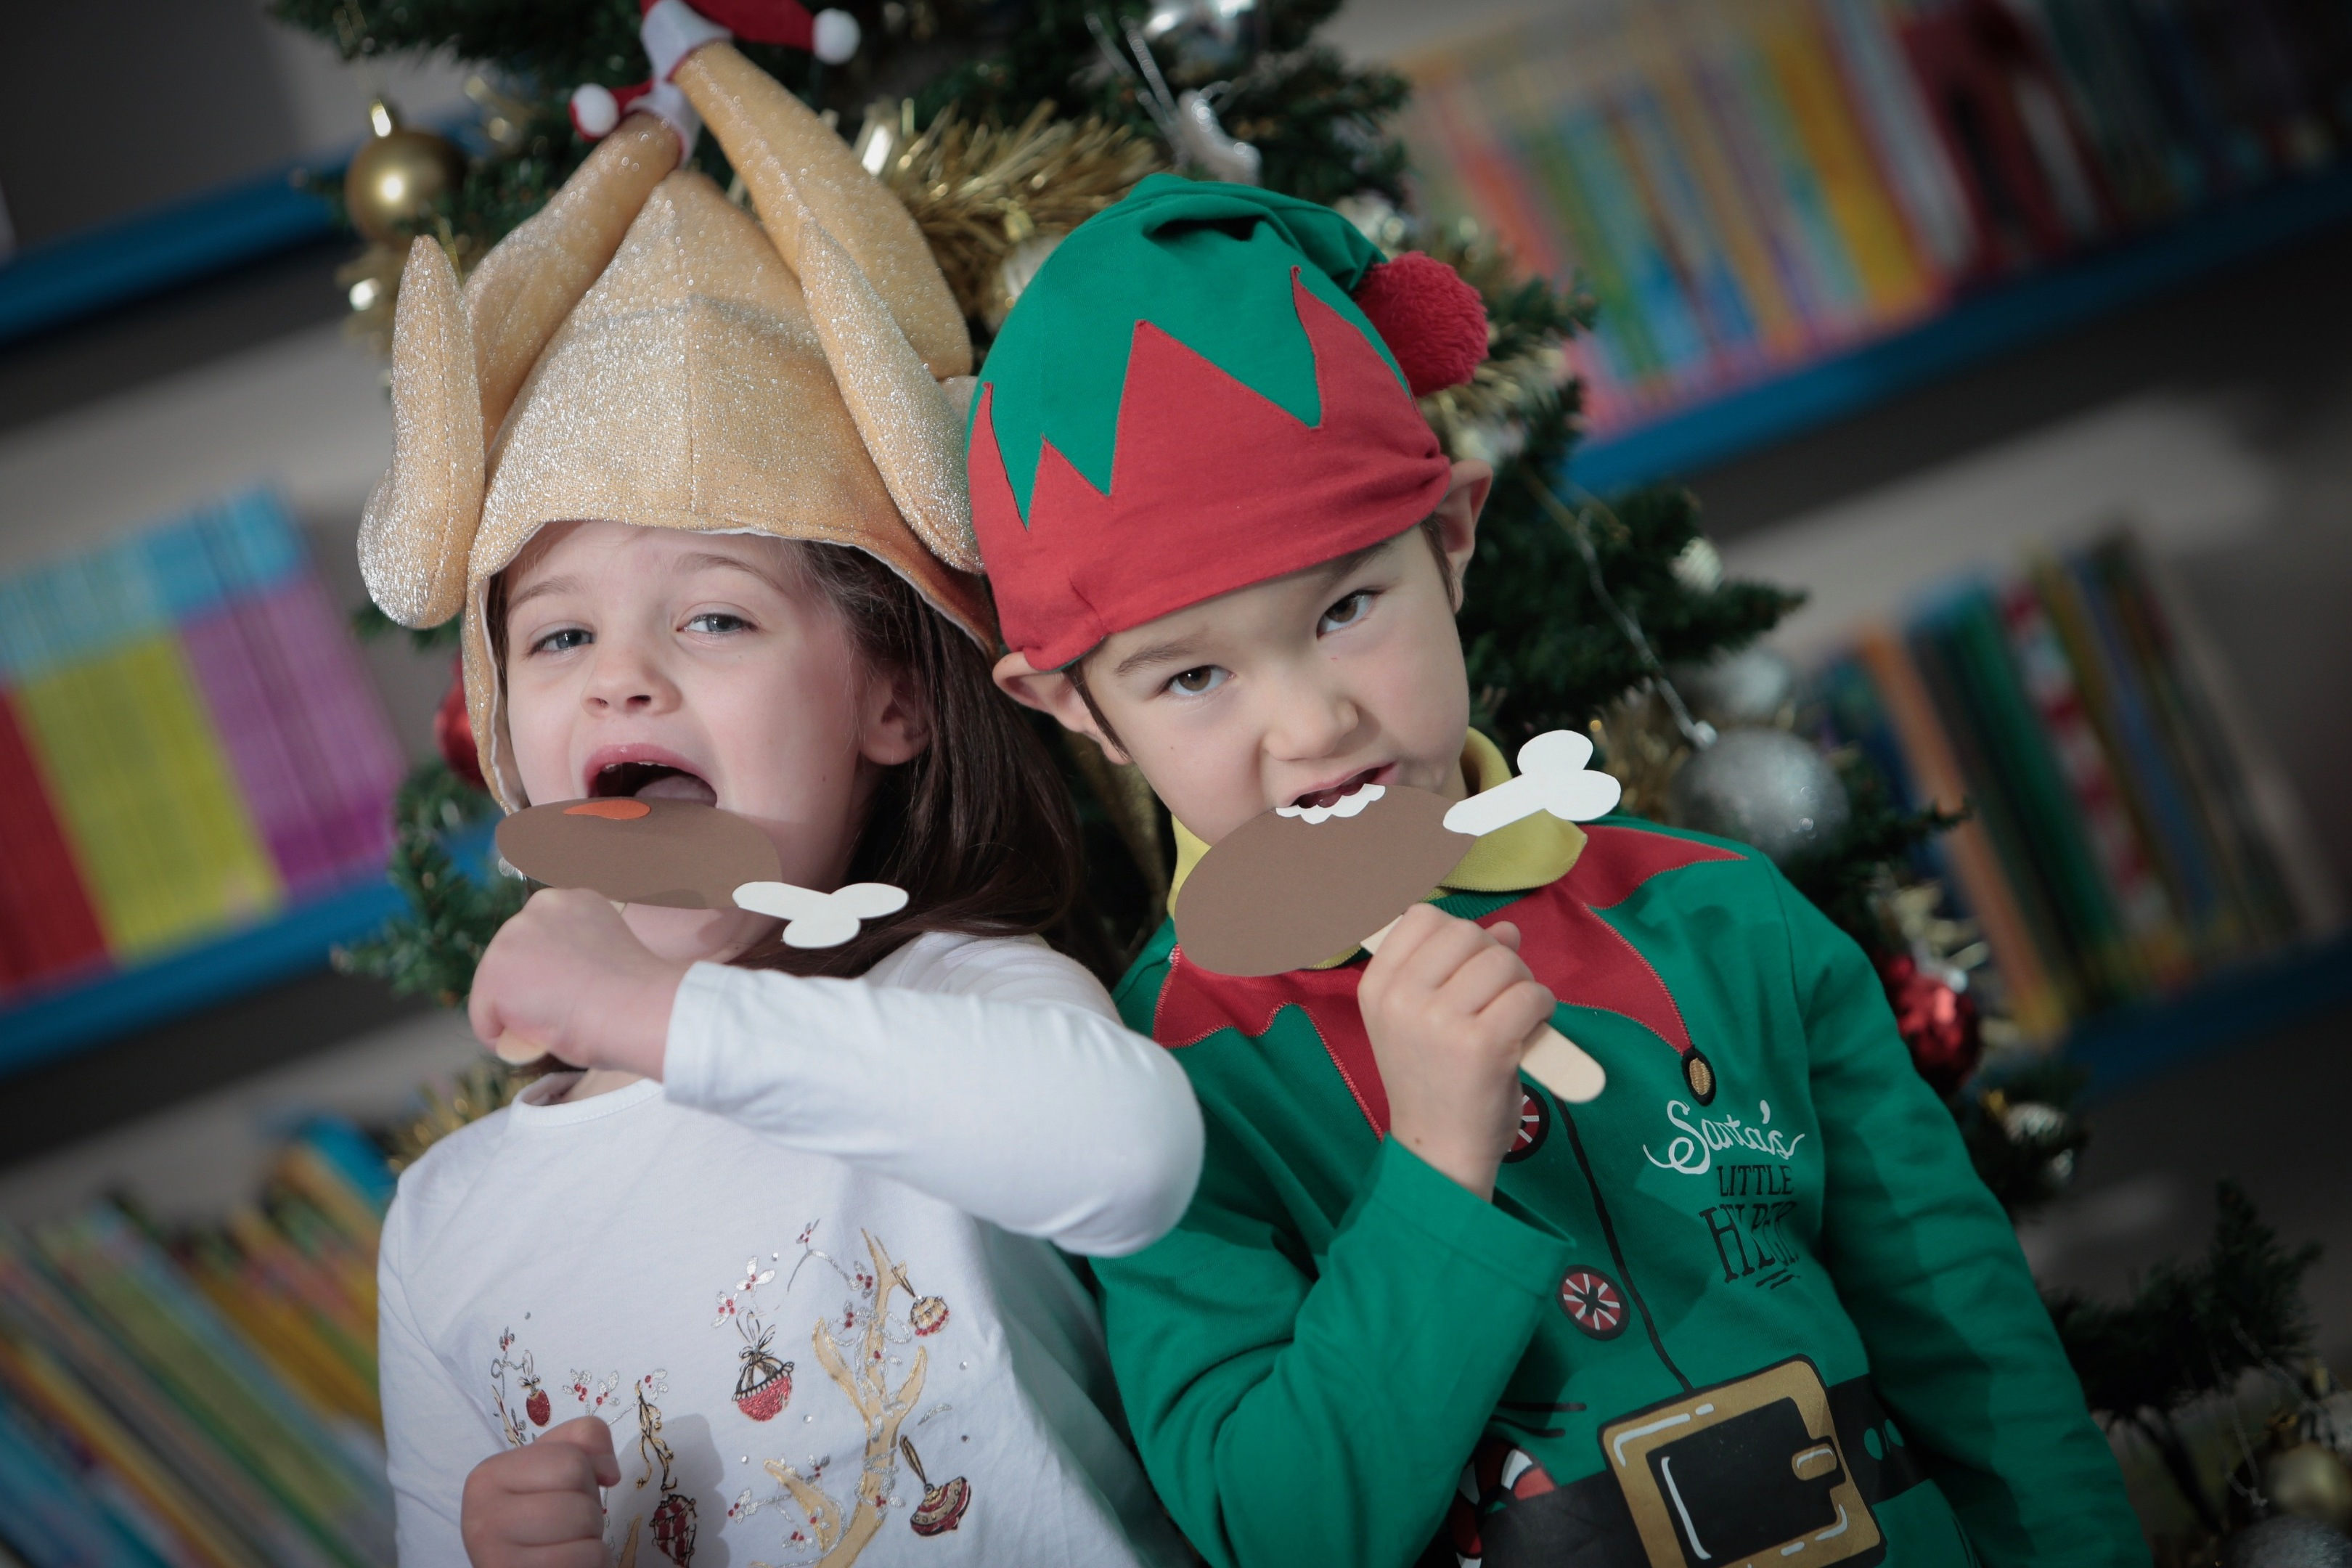 Midmar School pupils Ailsa Lyon, seven, and Aiden Ligertwood, six, show Christmas food safety is child's play.